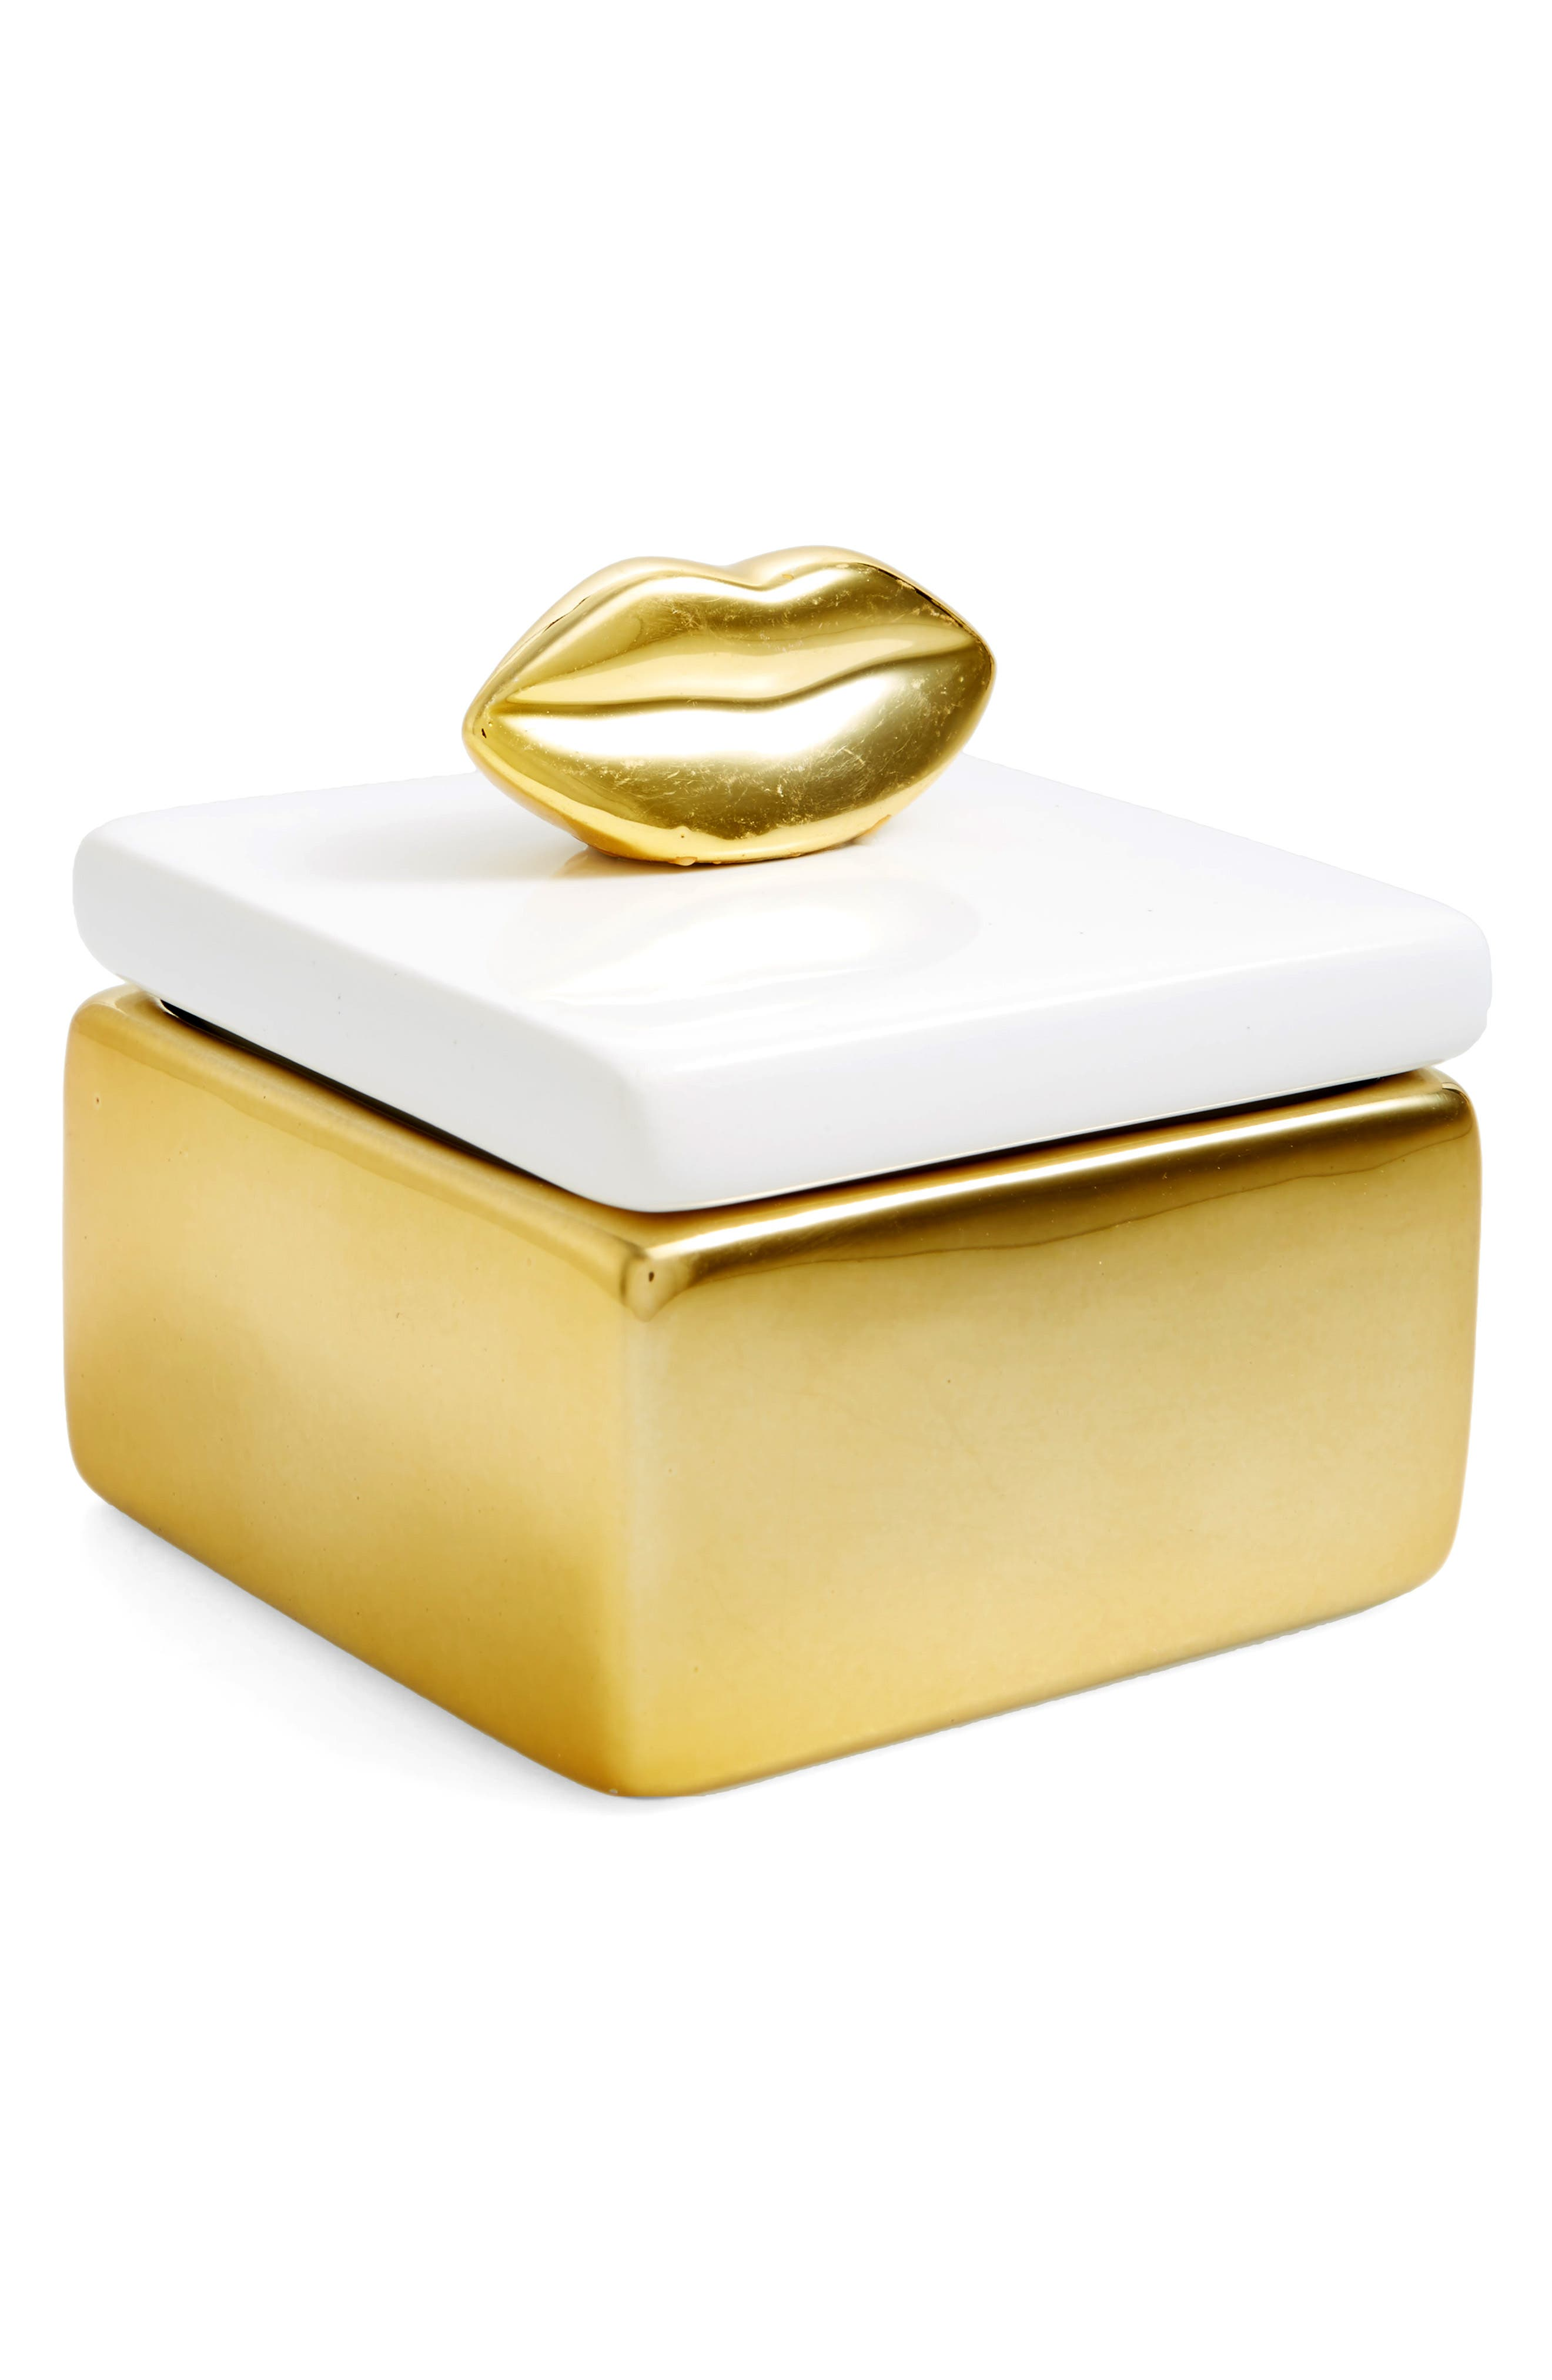 Lips Trinket Box,                         Main,                         color, Gold